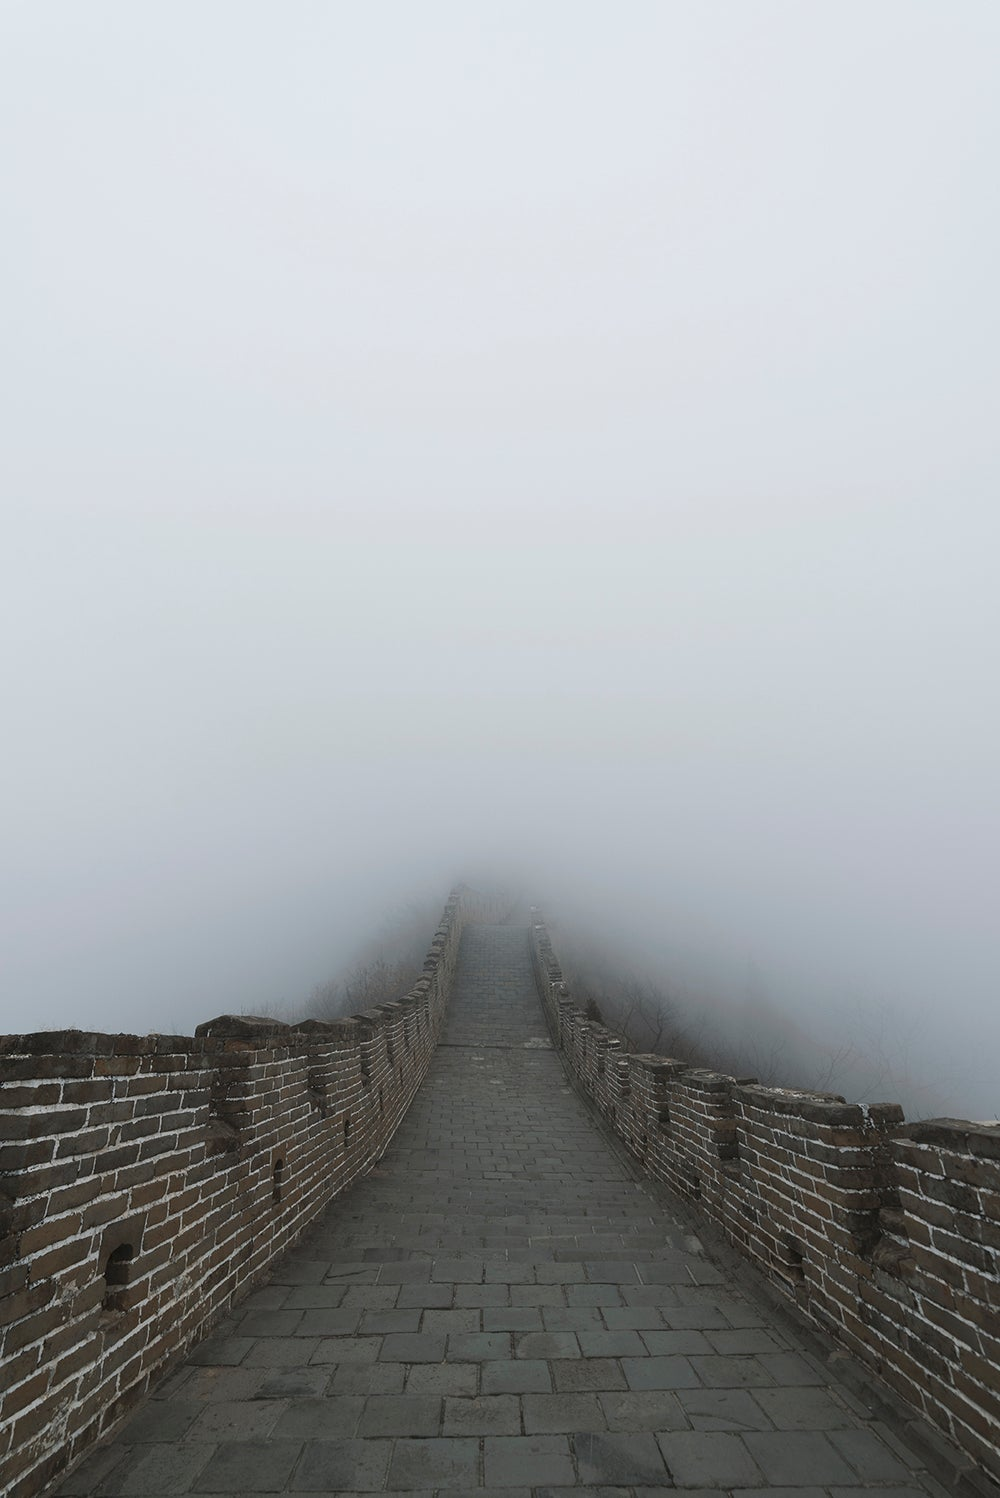 Solitude at The Endless Wall (Great Wall, China)